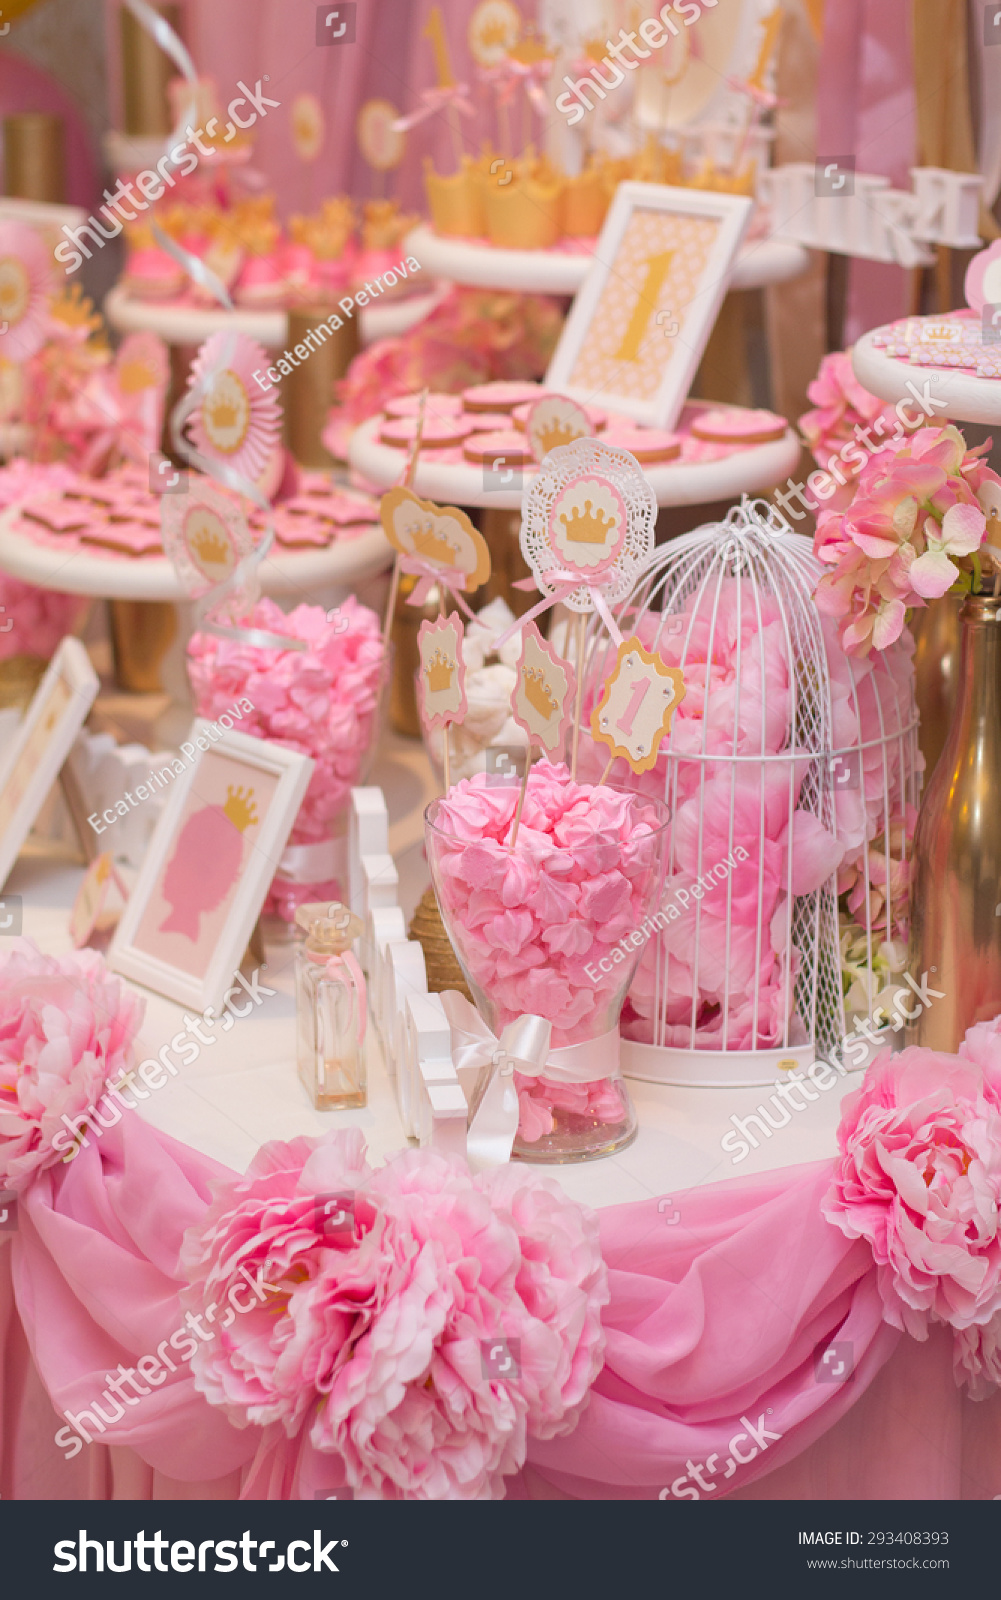 Kids Table Decoration Table Set Wedding Stock Photo (Edit Now ...